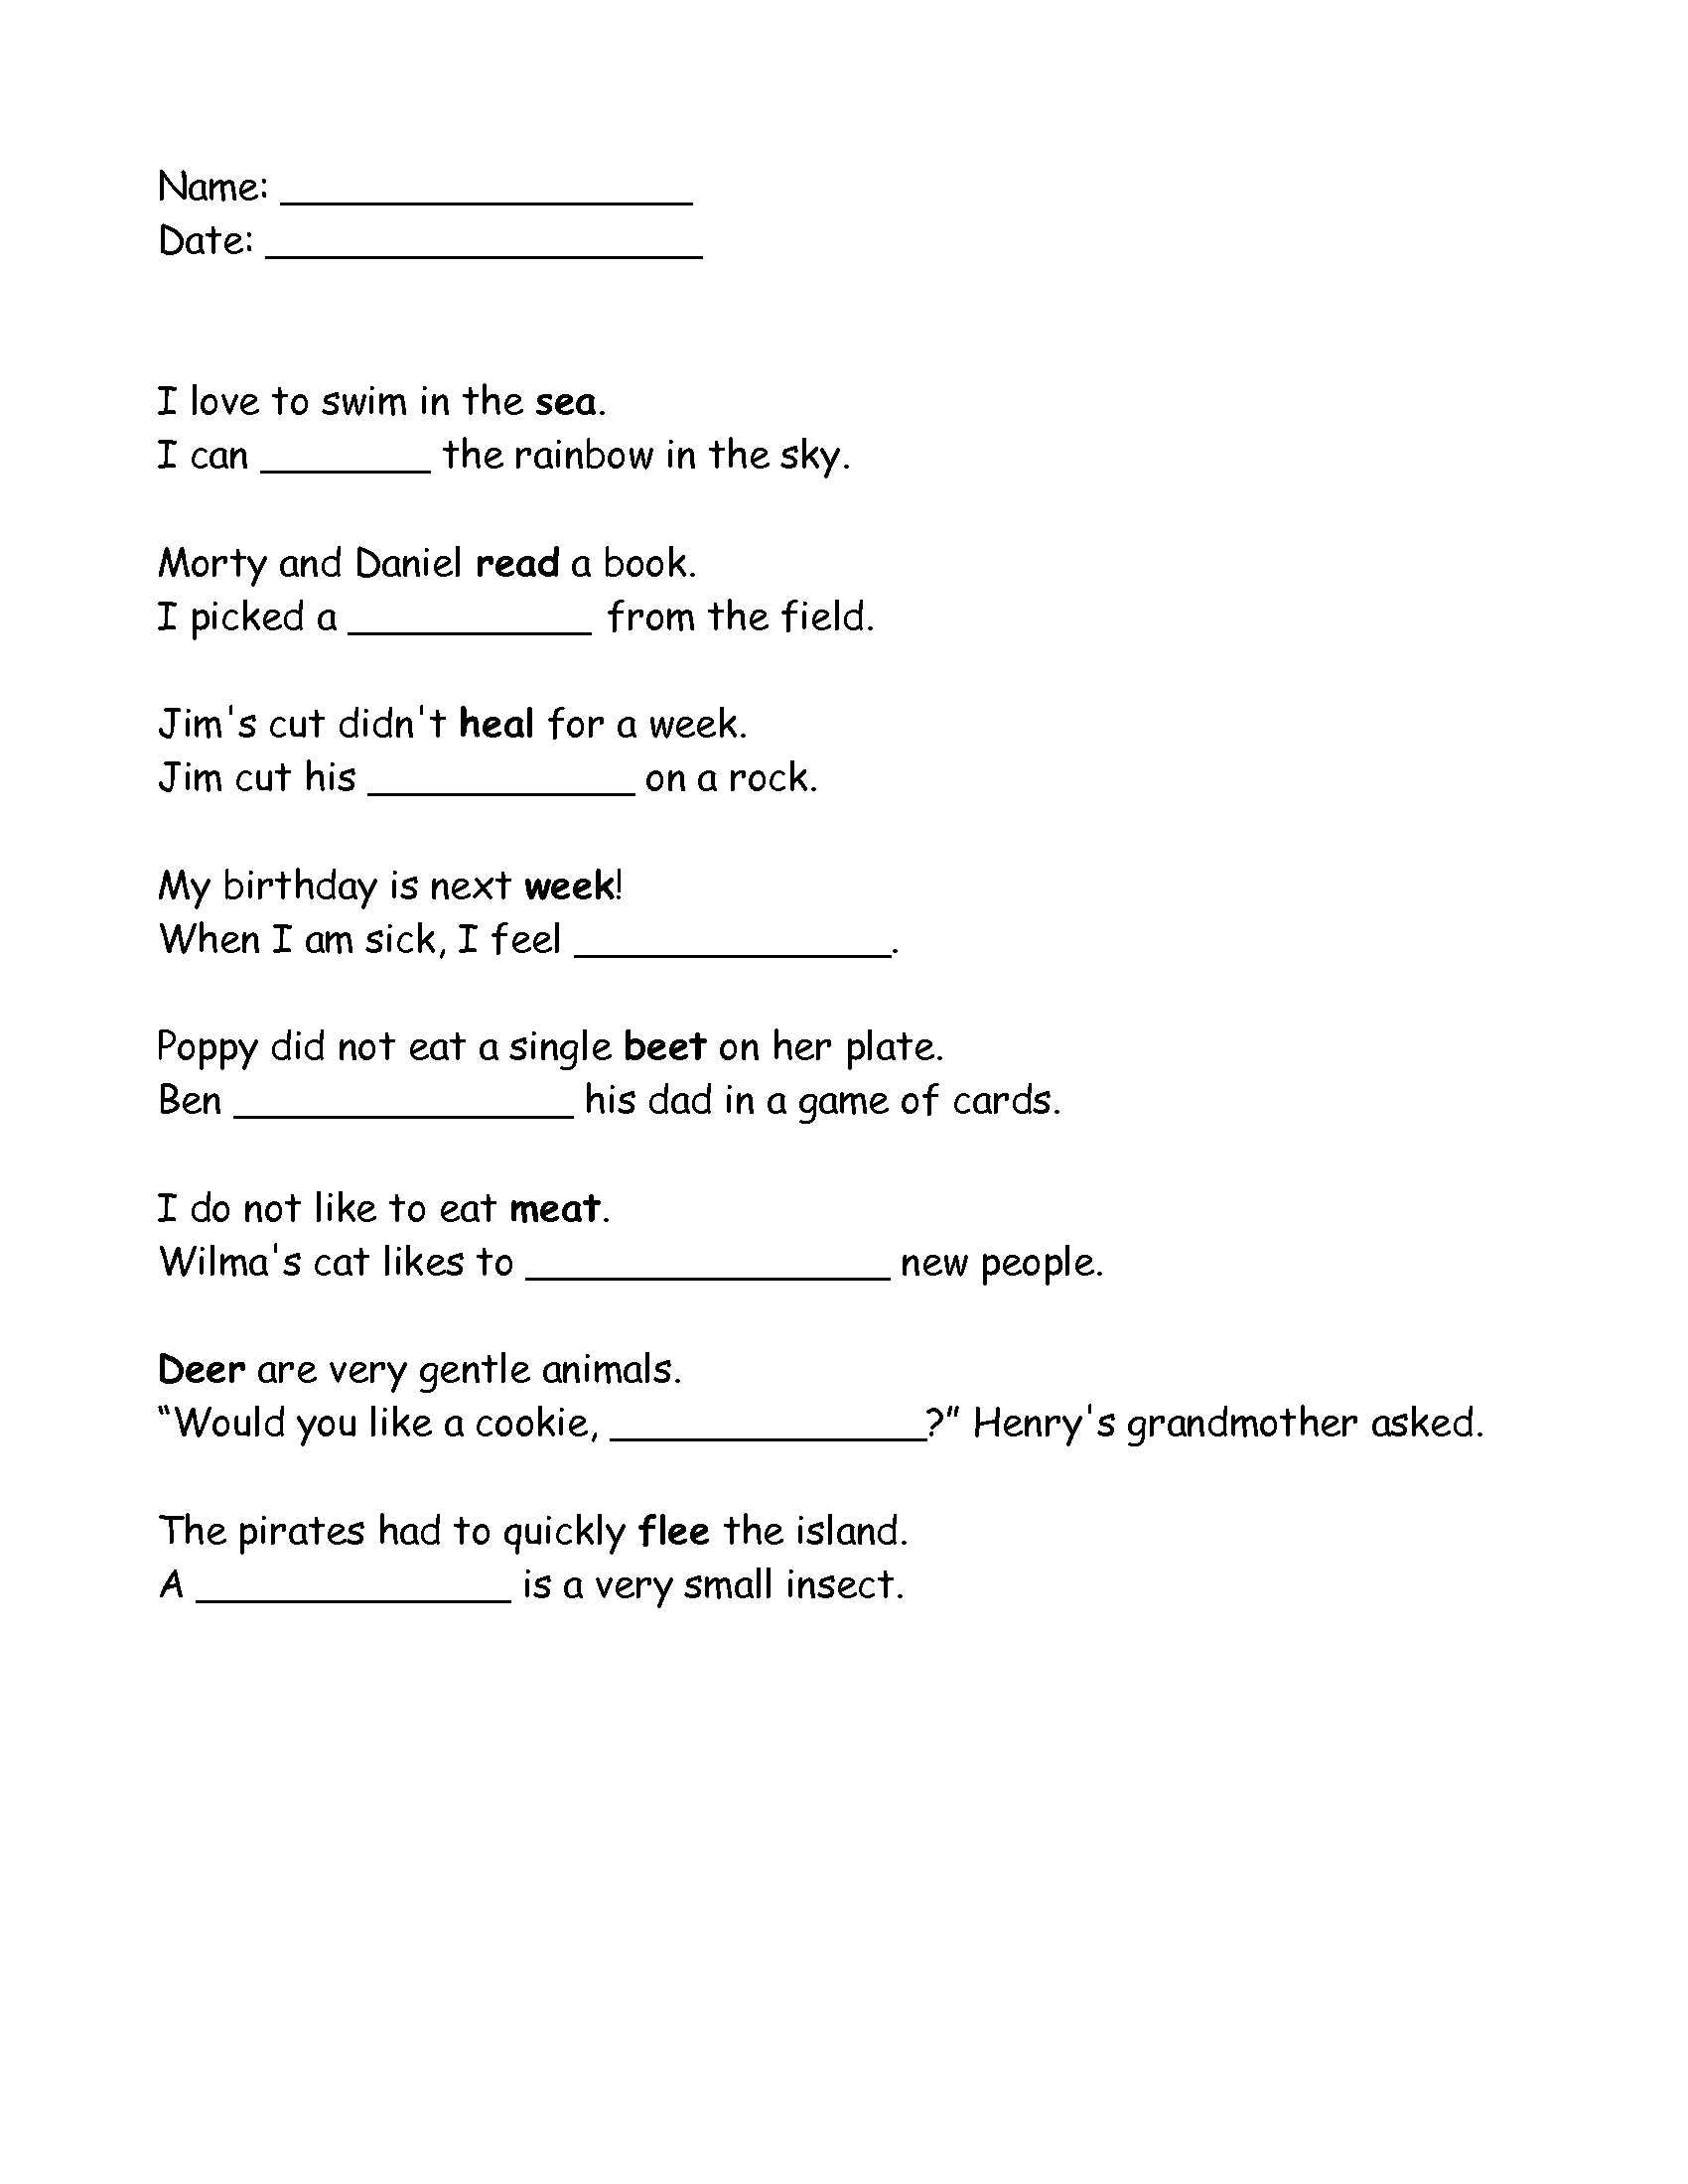 Grade 2 Homophones Ee And Ea Worksheet That I Made Click